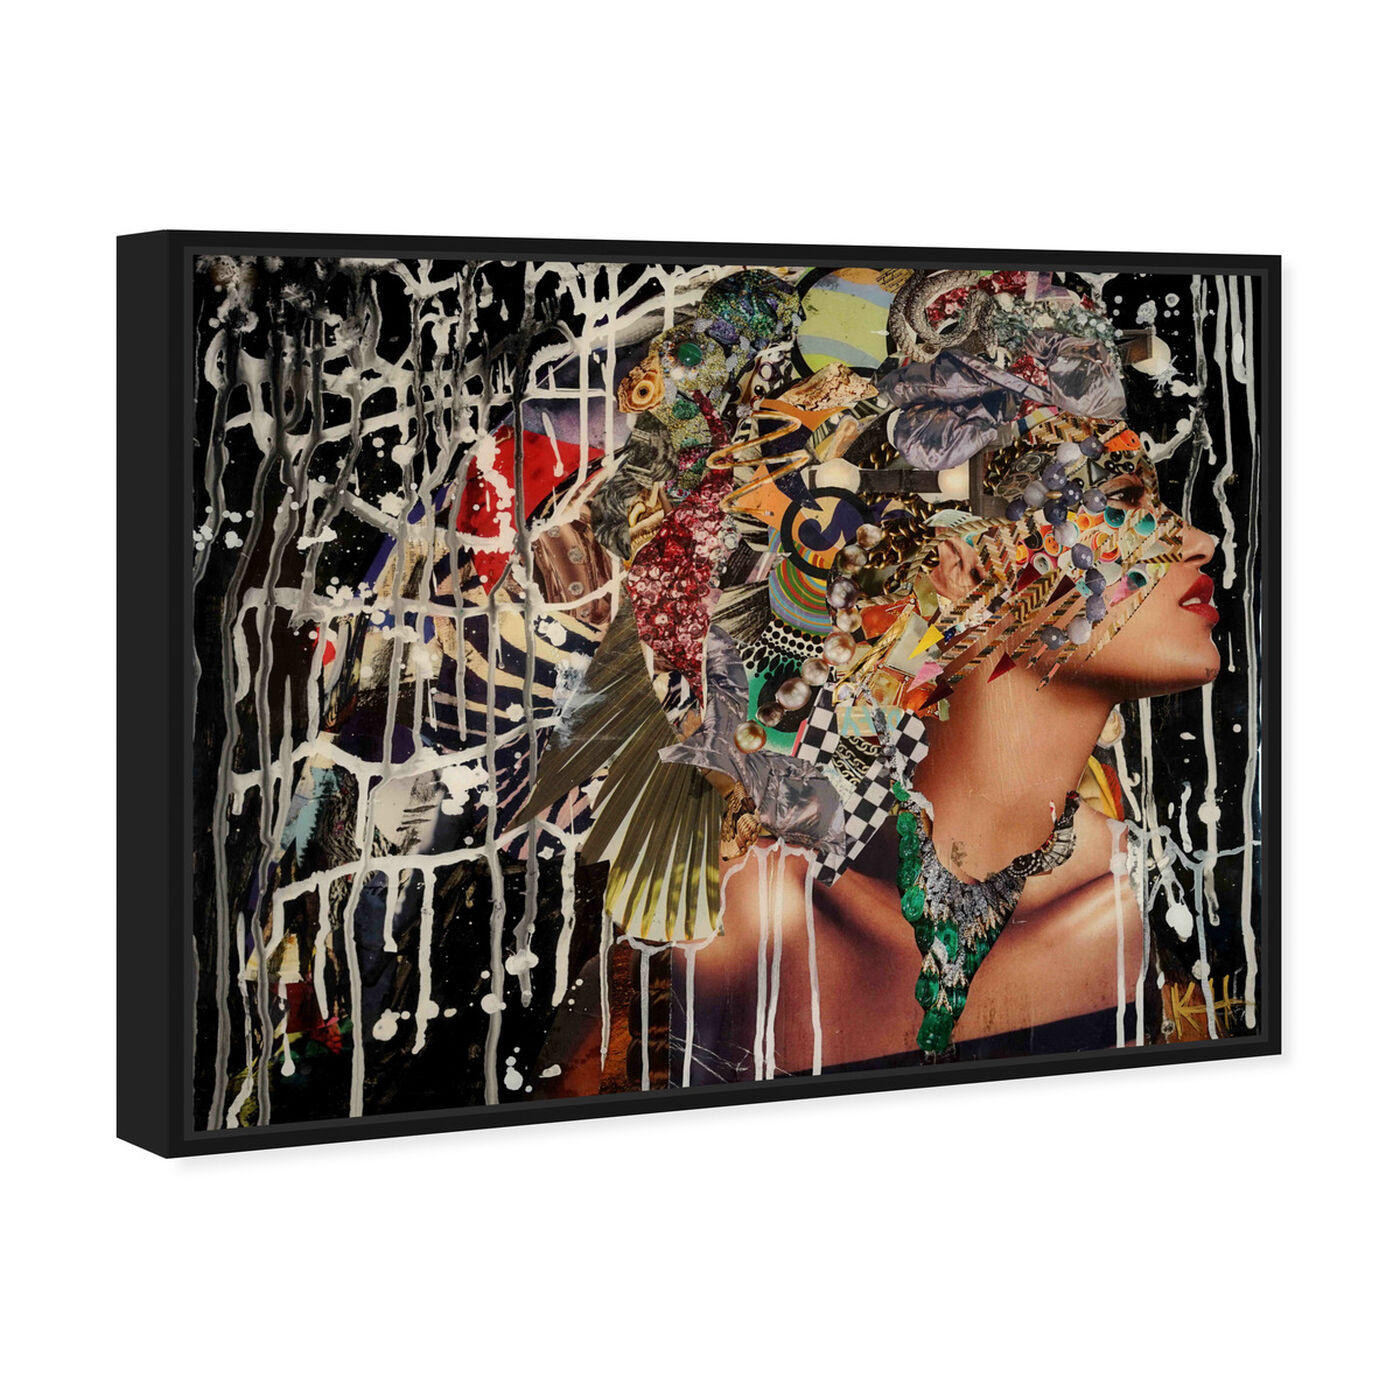 Angled view of Katy Hirschfeld - Tribal and Wild featuring fashion and glam and portraits art.